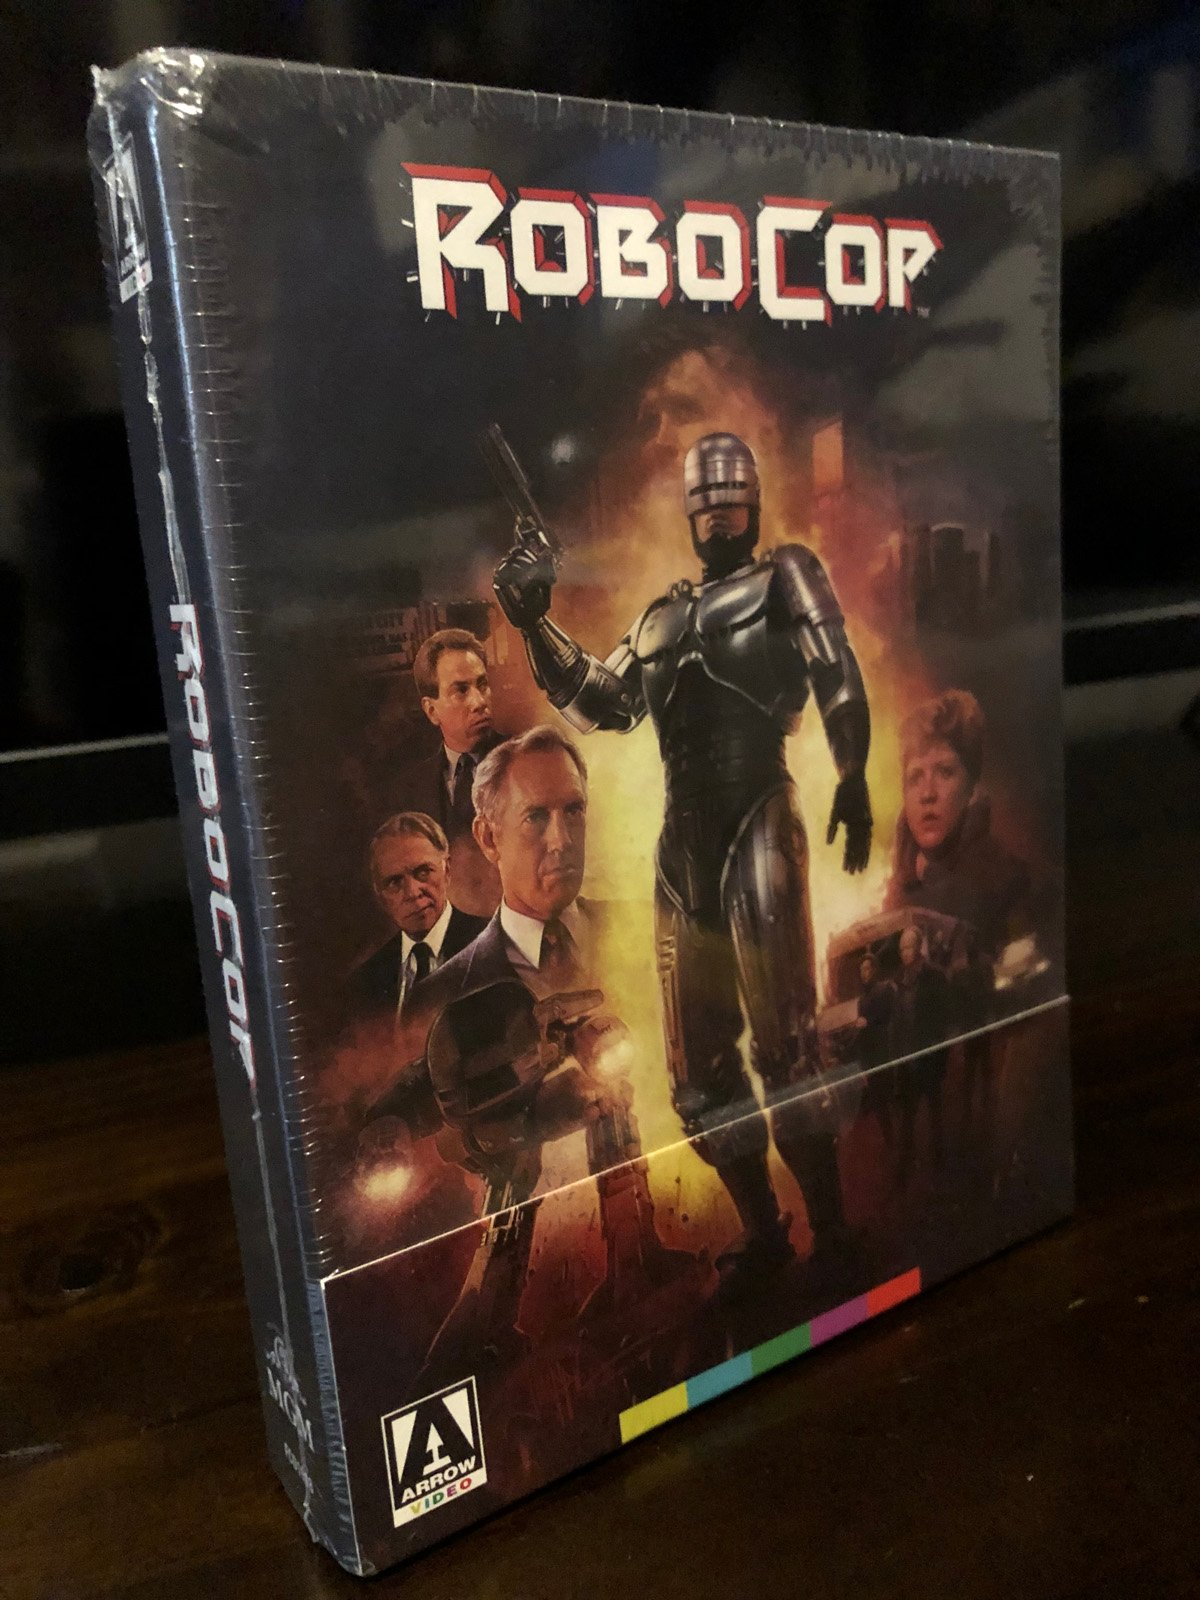 Robocop 2-Disc Limited Edition Collector's Set